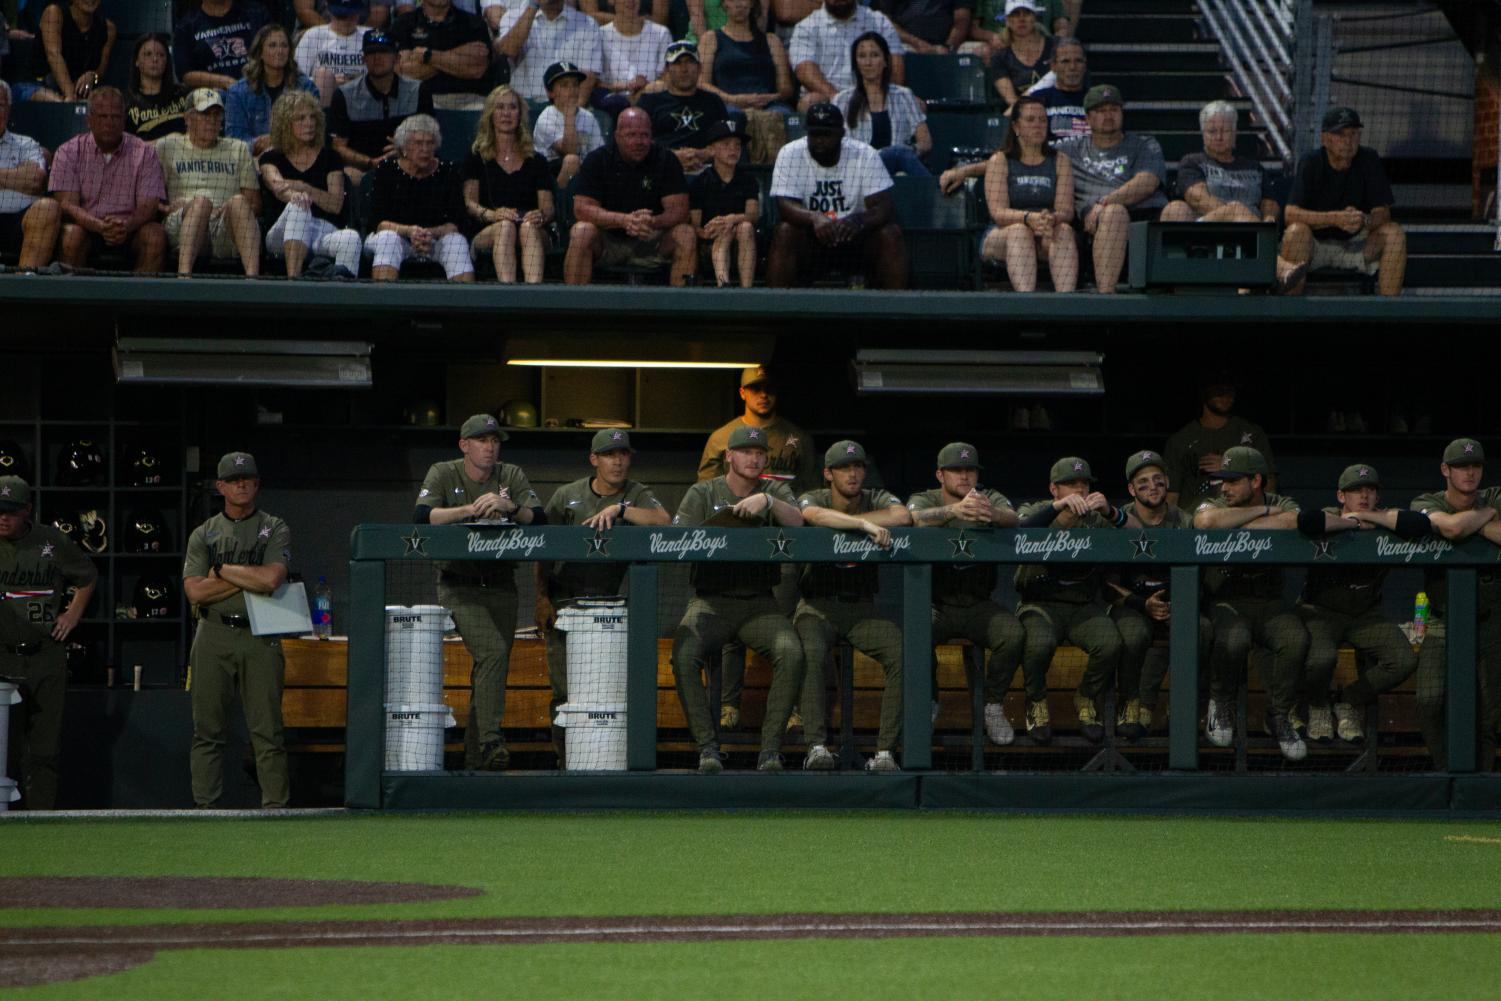 Seven months removed from a National Championship at the College World Series, the Commodores prepare for their title defense.